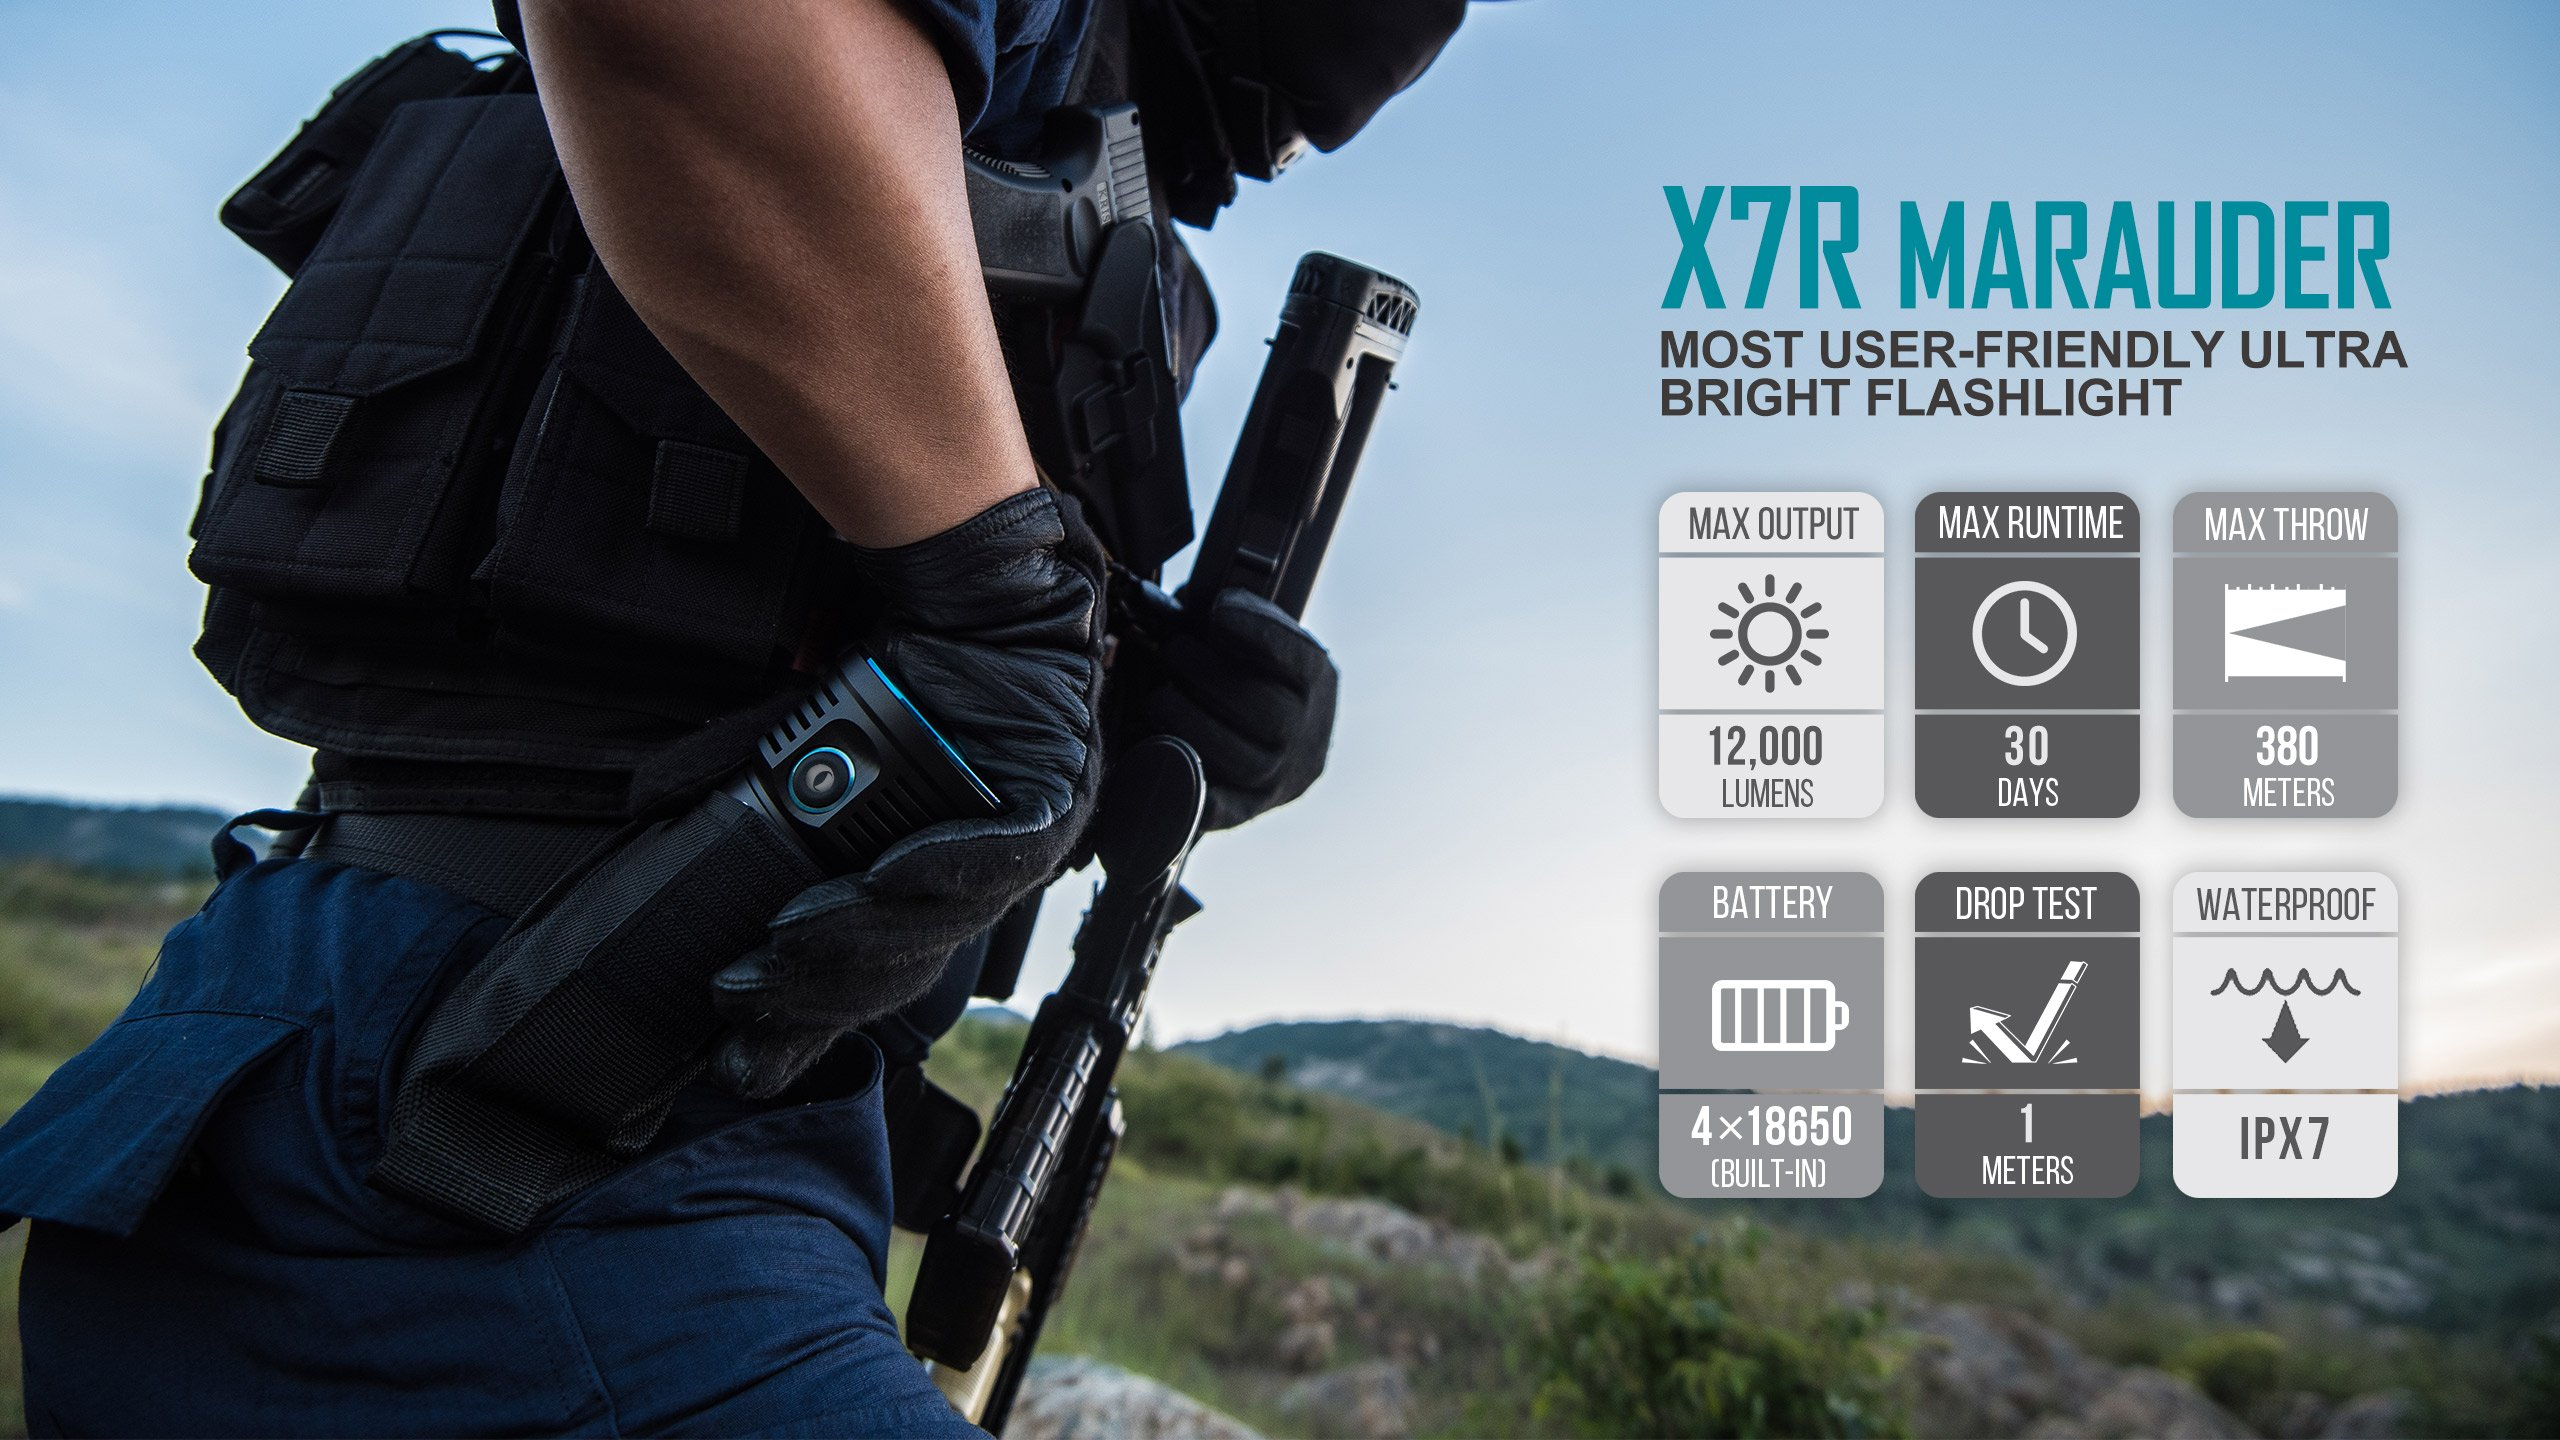 Olight X7R Marauder 12000 Lumens CREE XHP 70 LED USB Rechargeable Flashlight for Camping,Hunting,Searching,with 4 X 18650 Rechargeable Batteries (Built-in) and SKYBEN Accessory by SKYBEN (Image #7)